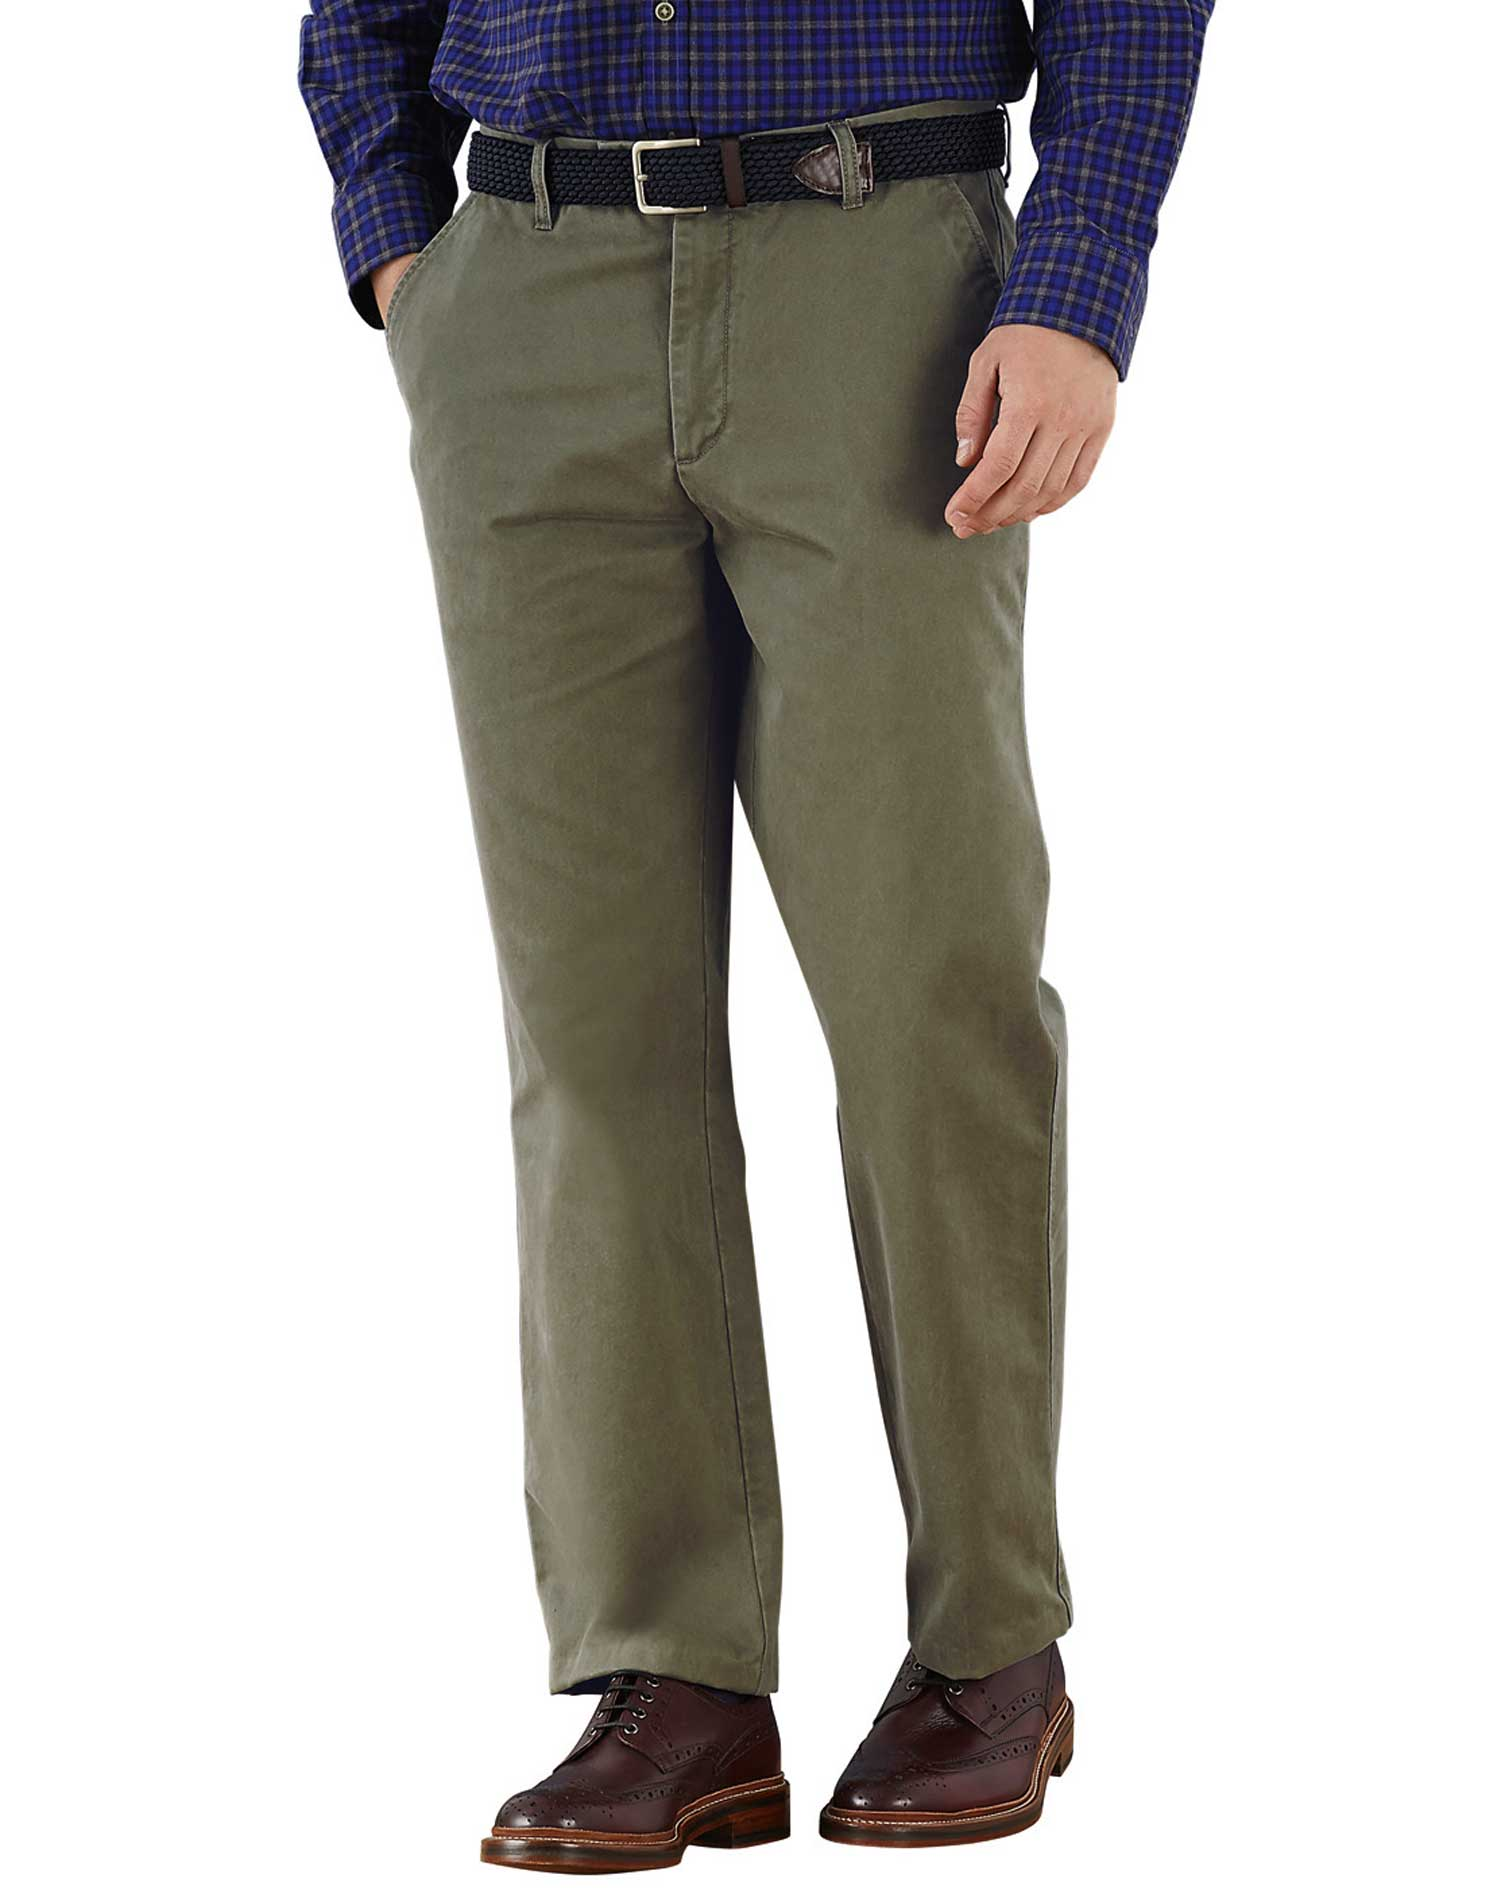 Olive Classic Fit Flat Front Cotton Chino Trousers Size W42 L34 by Charles Tyrwhitt